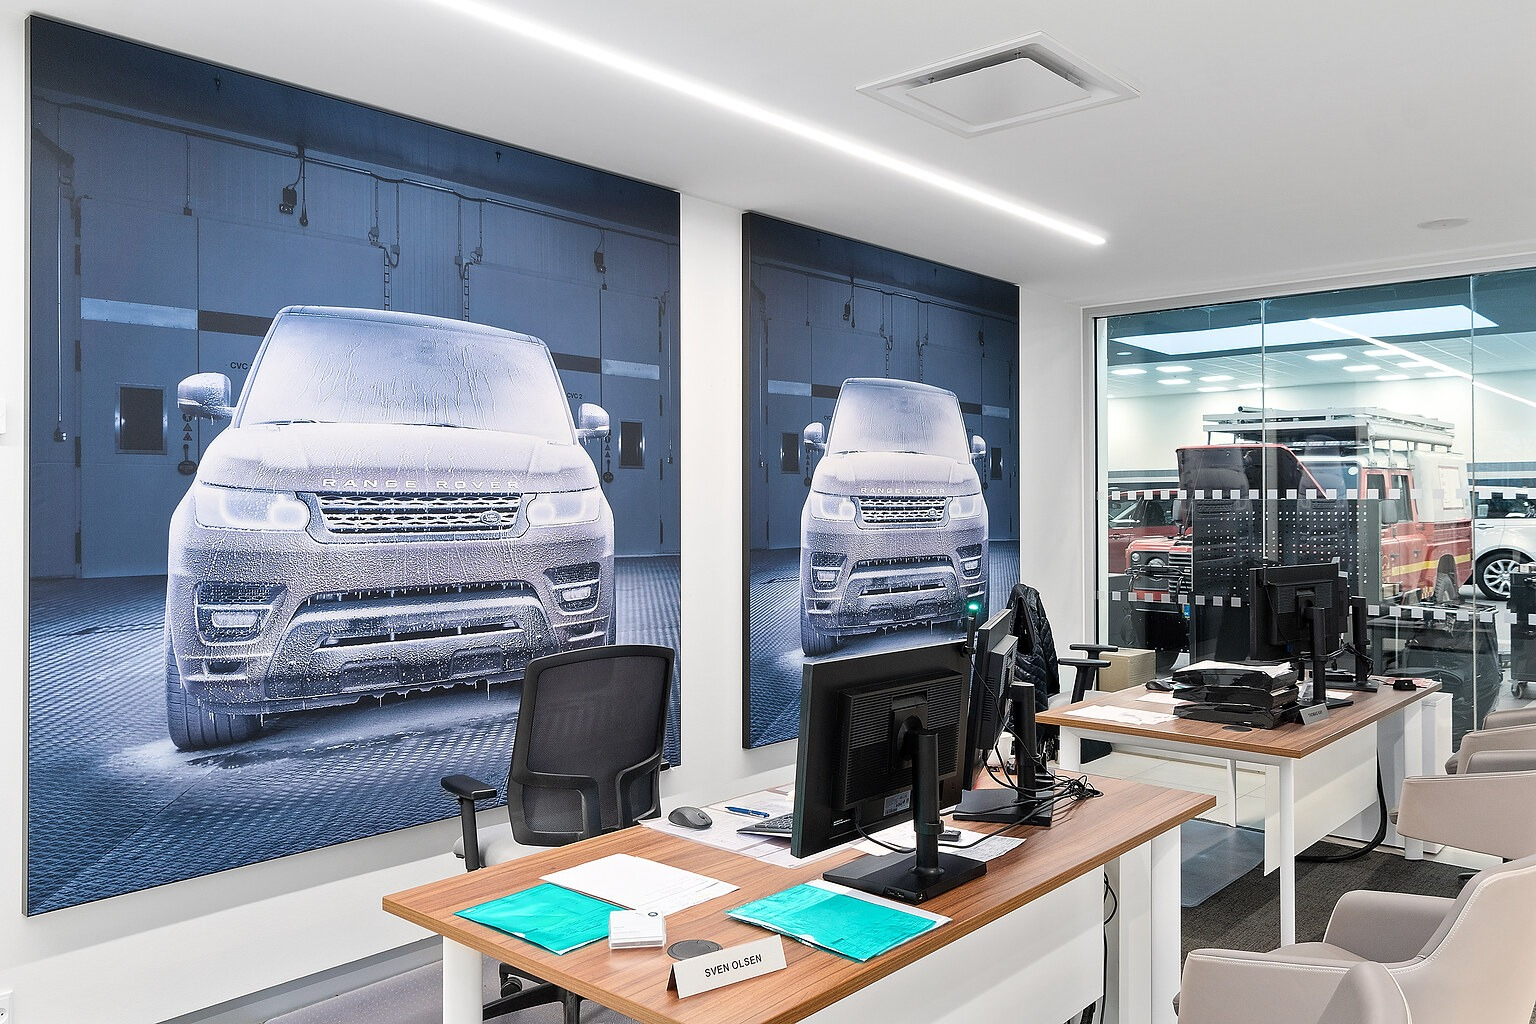 Acoustic pictures picturing Range Rover models hanging over desk tops at British MotorGroup in Søborg.